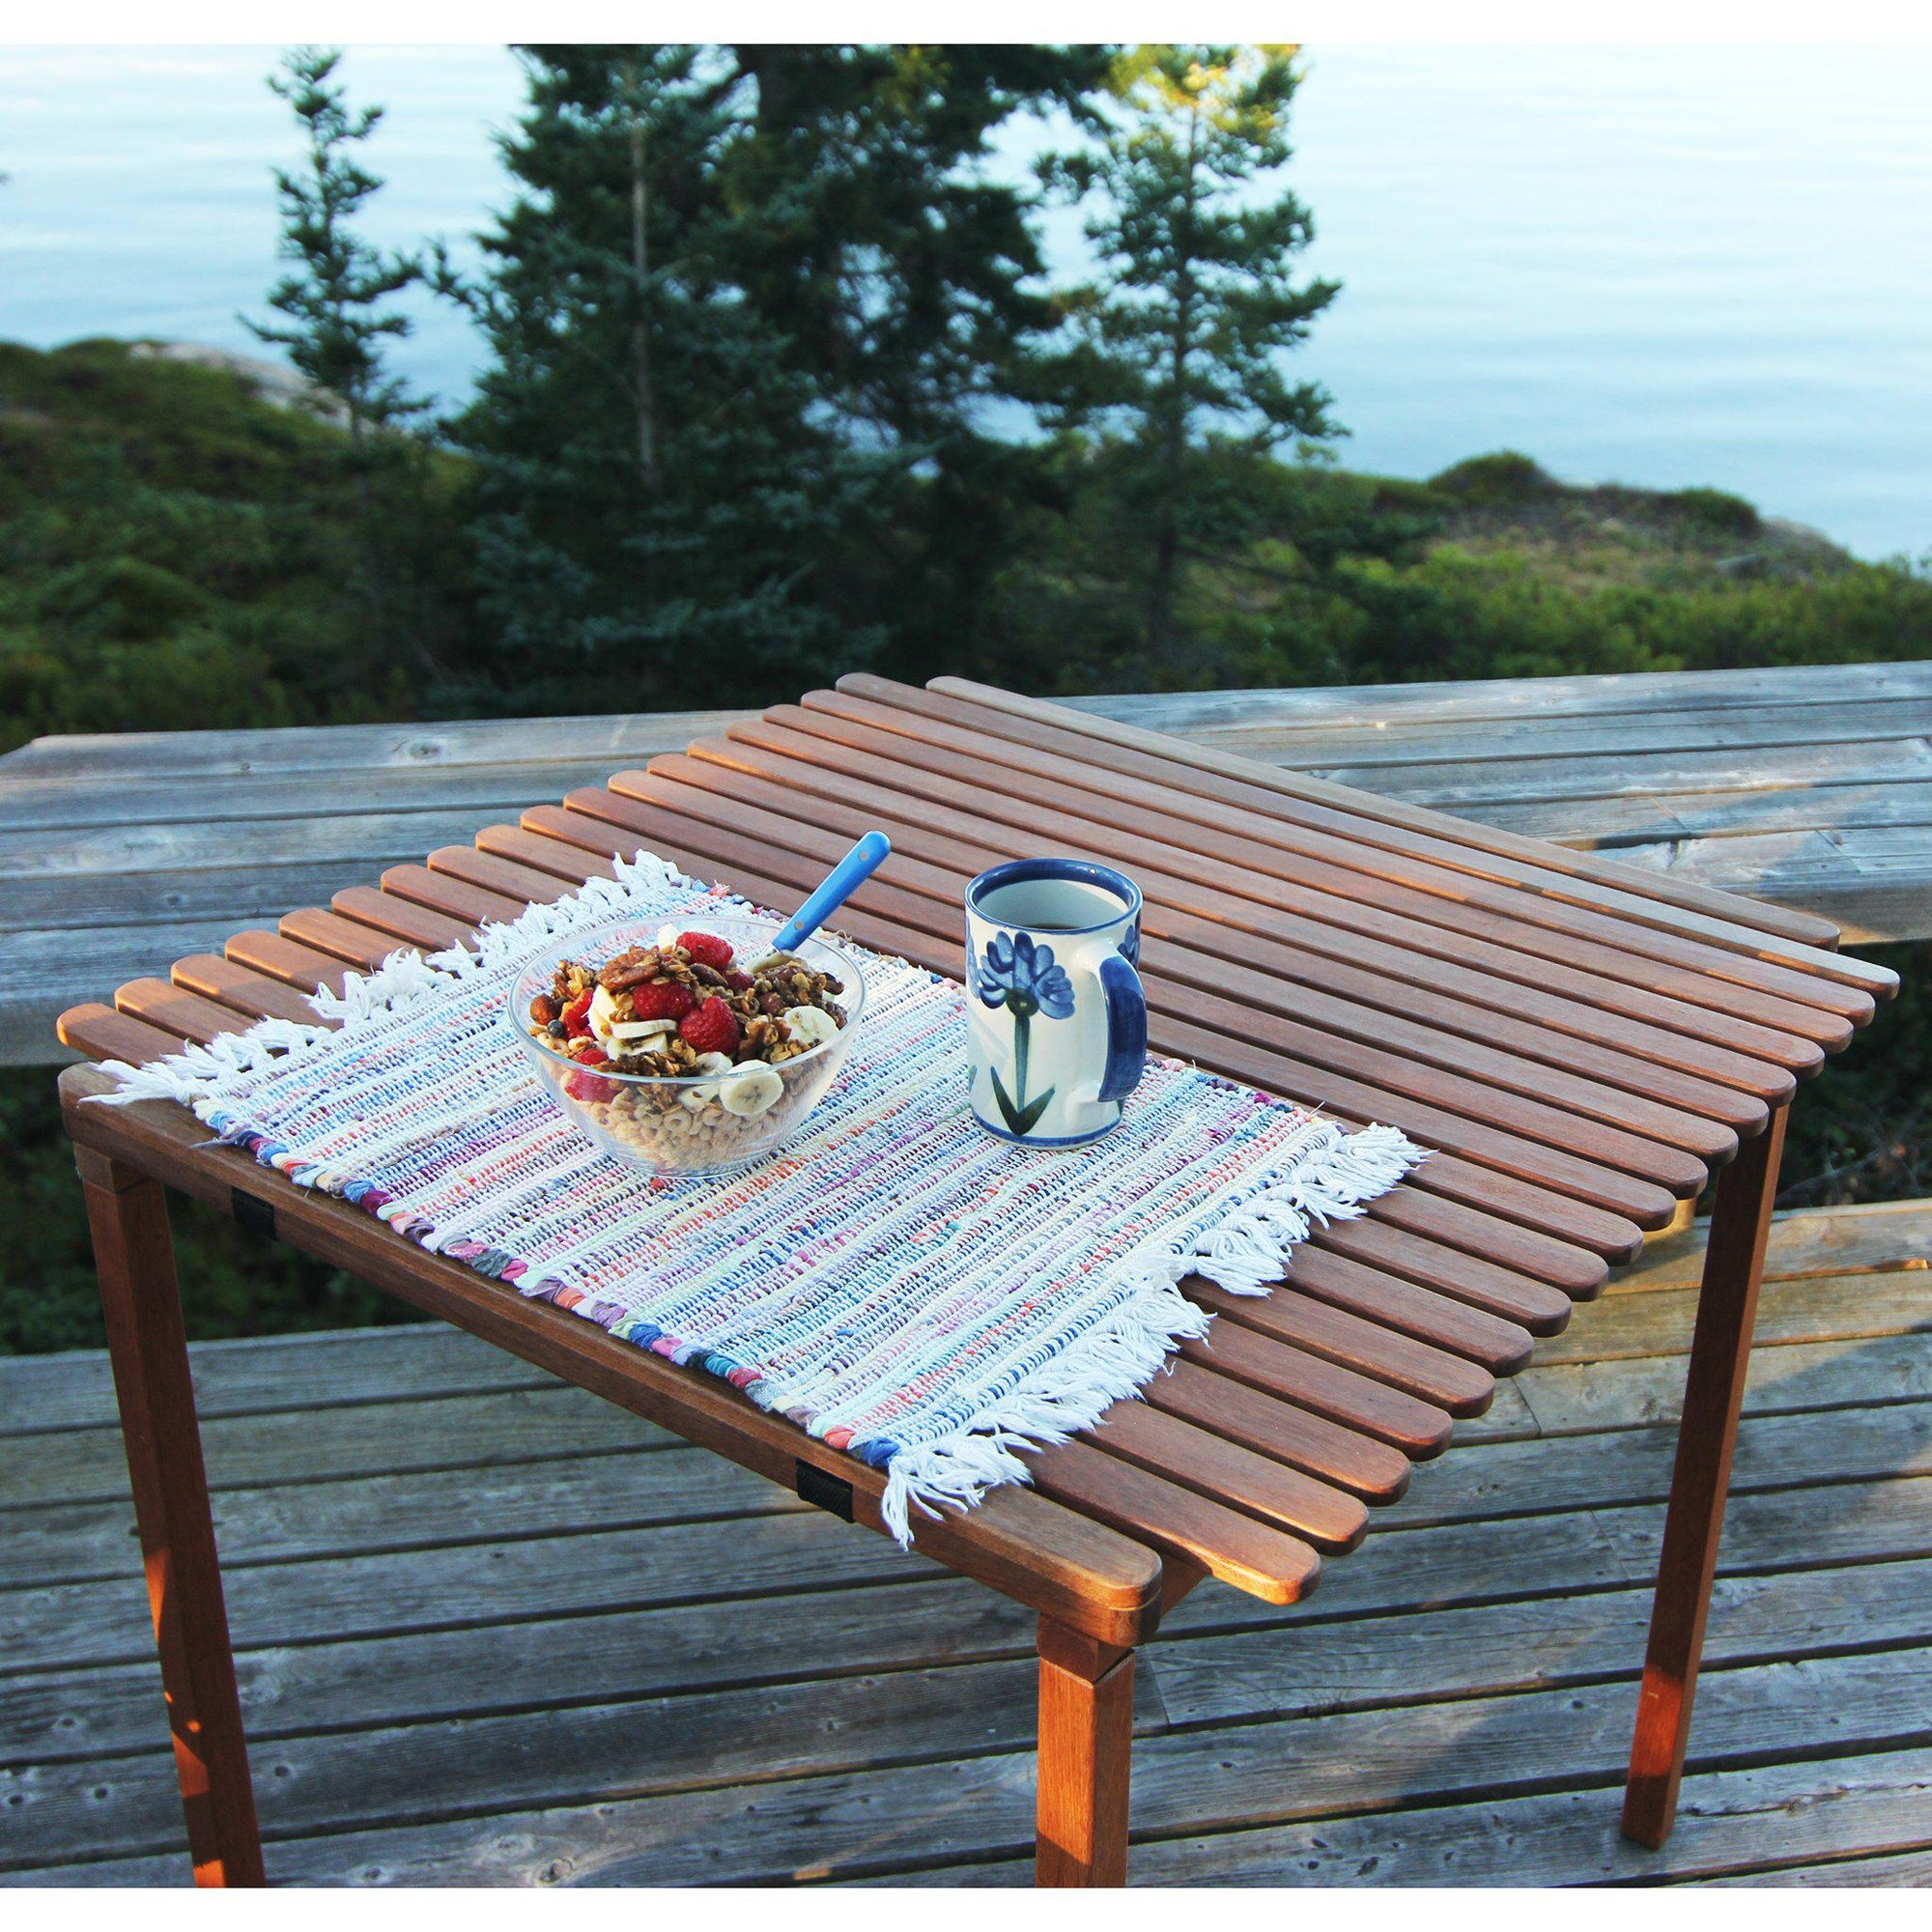 Nomad Table, from Byer of Maine